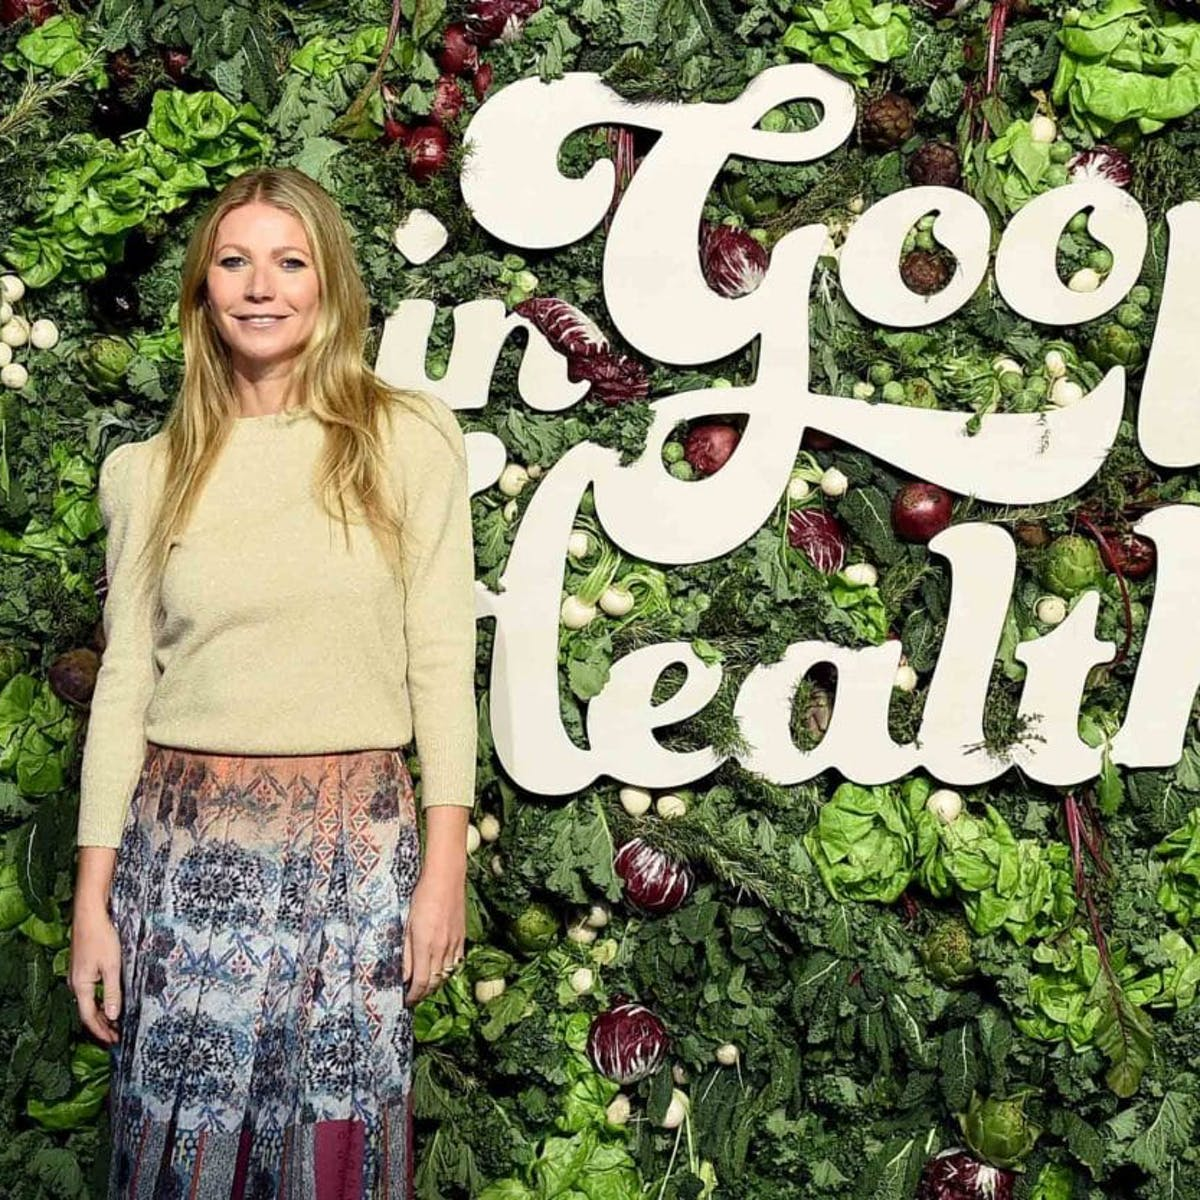 Gwyneth Paltrow is unfazed by your complaints about Goop pseudoscience